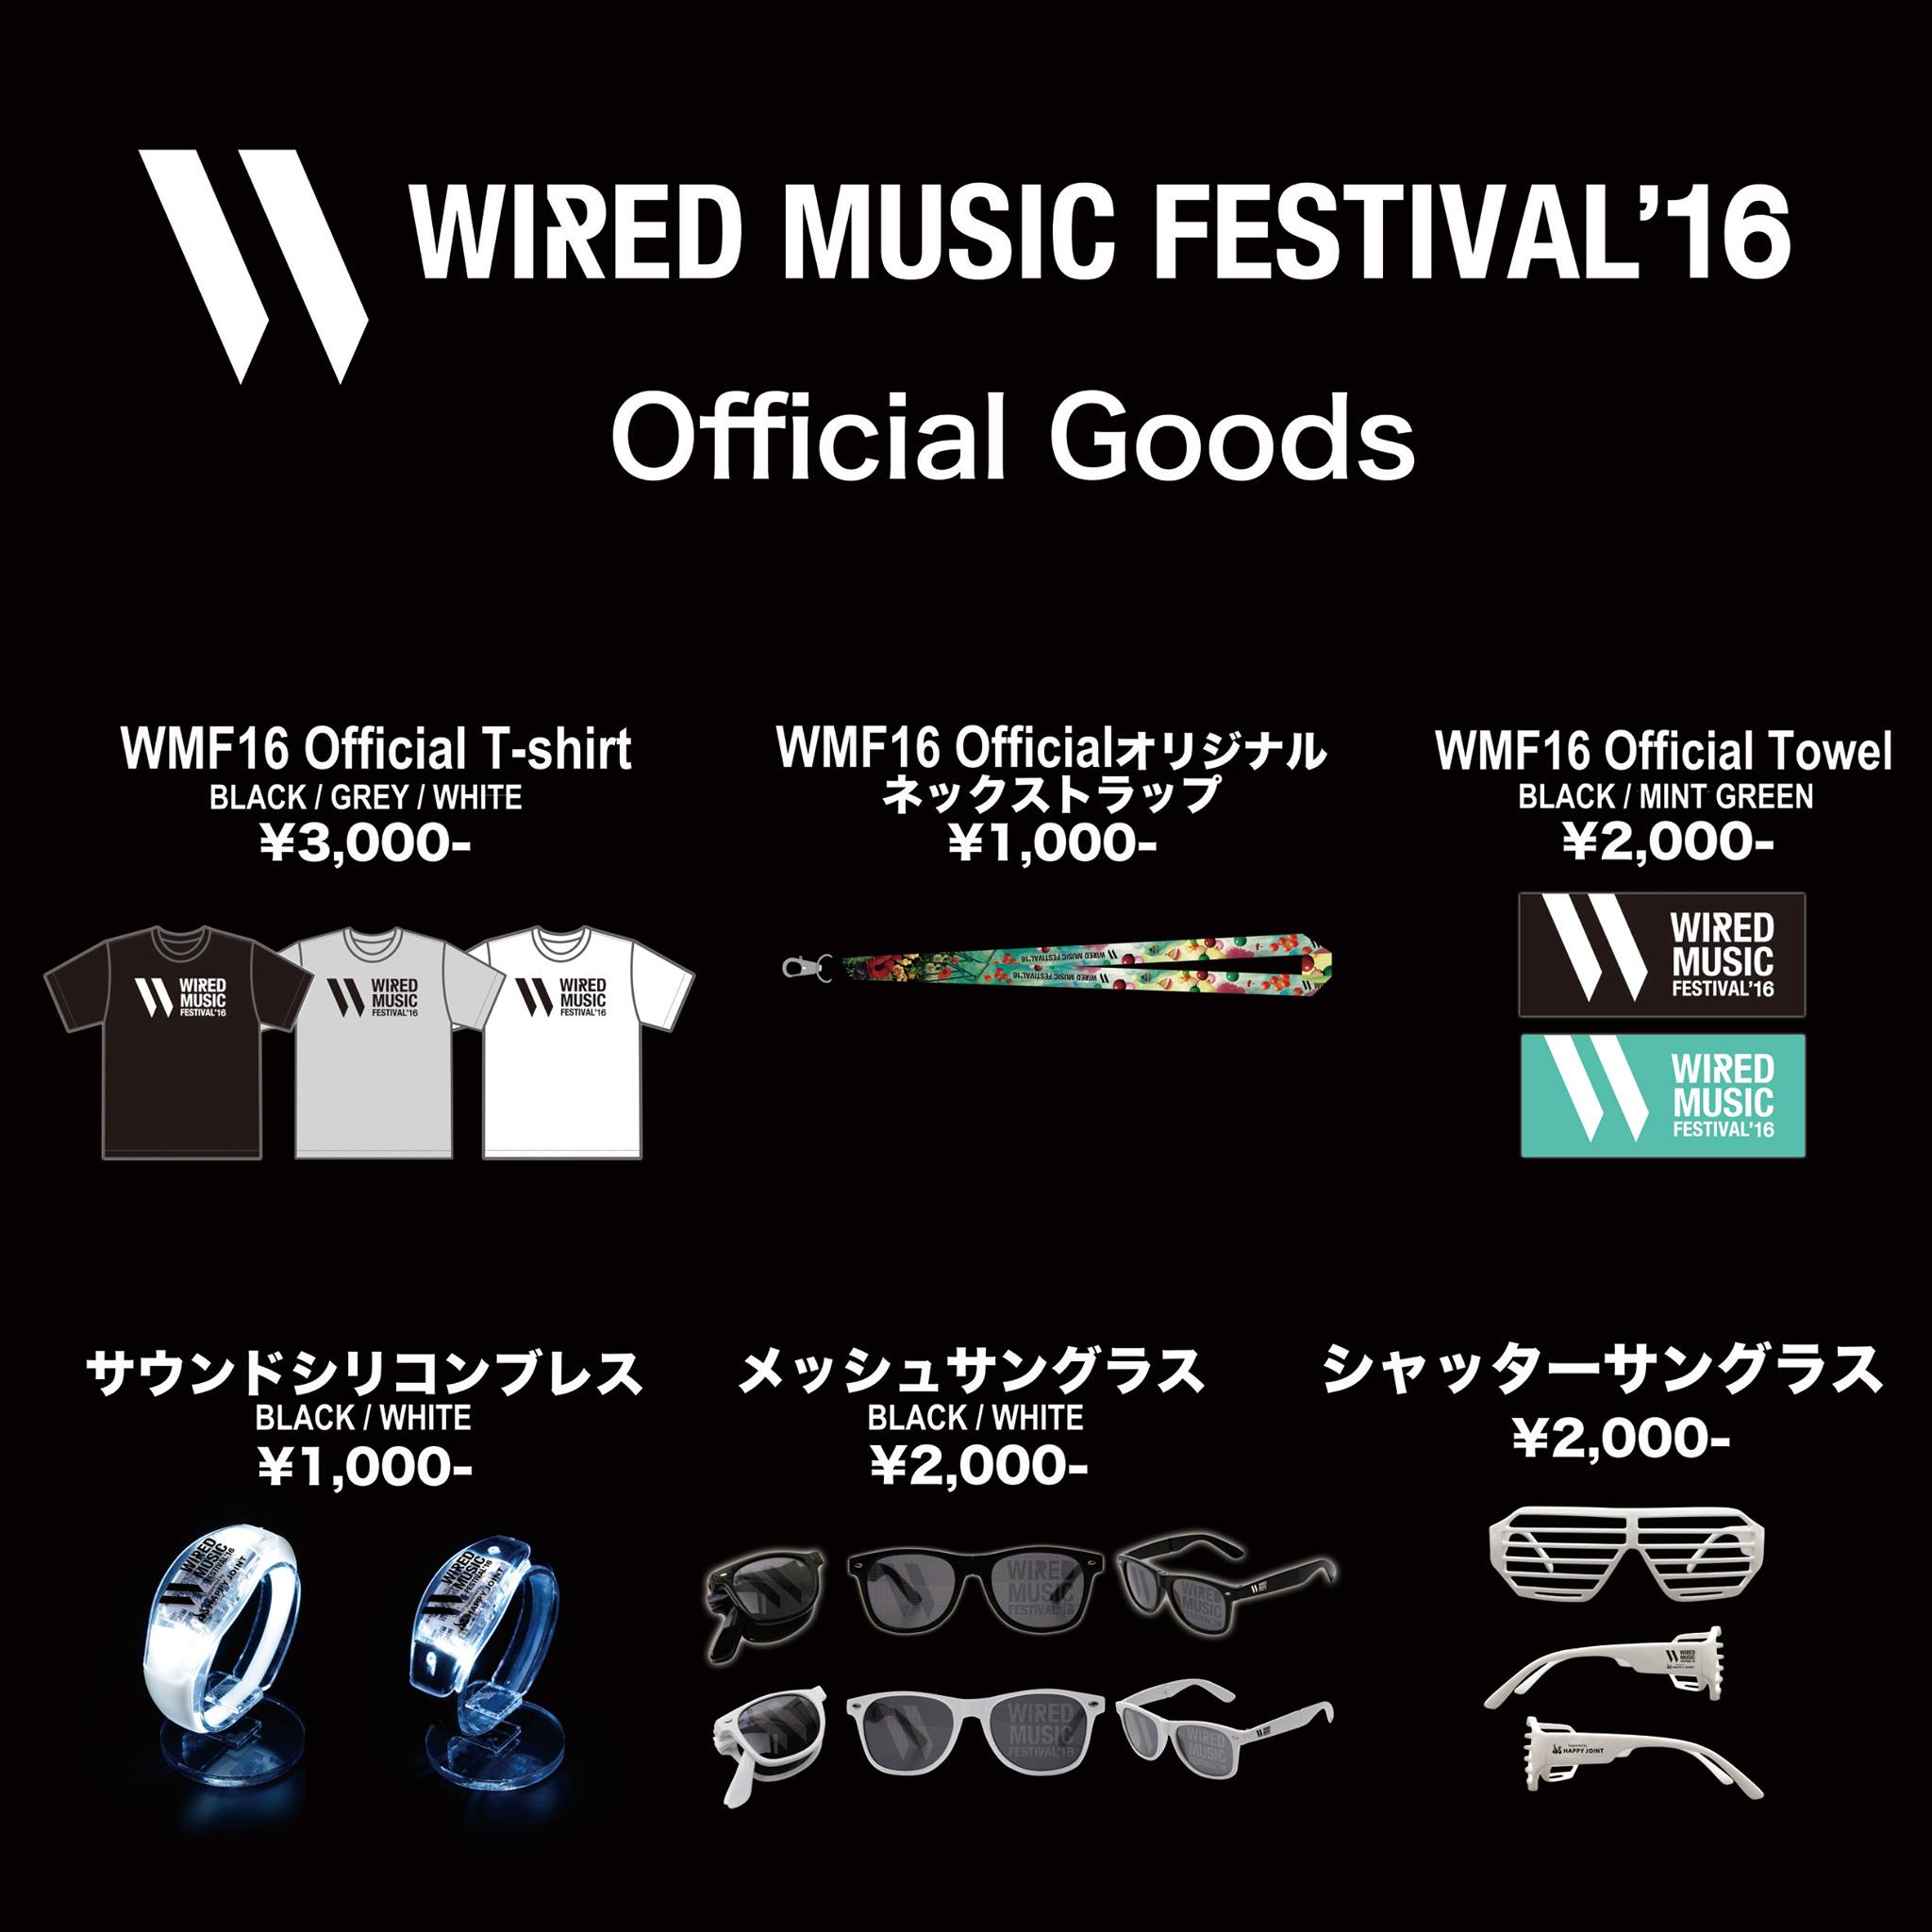 WIRED MUSIC FESTIVAL 2016 goods